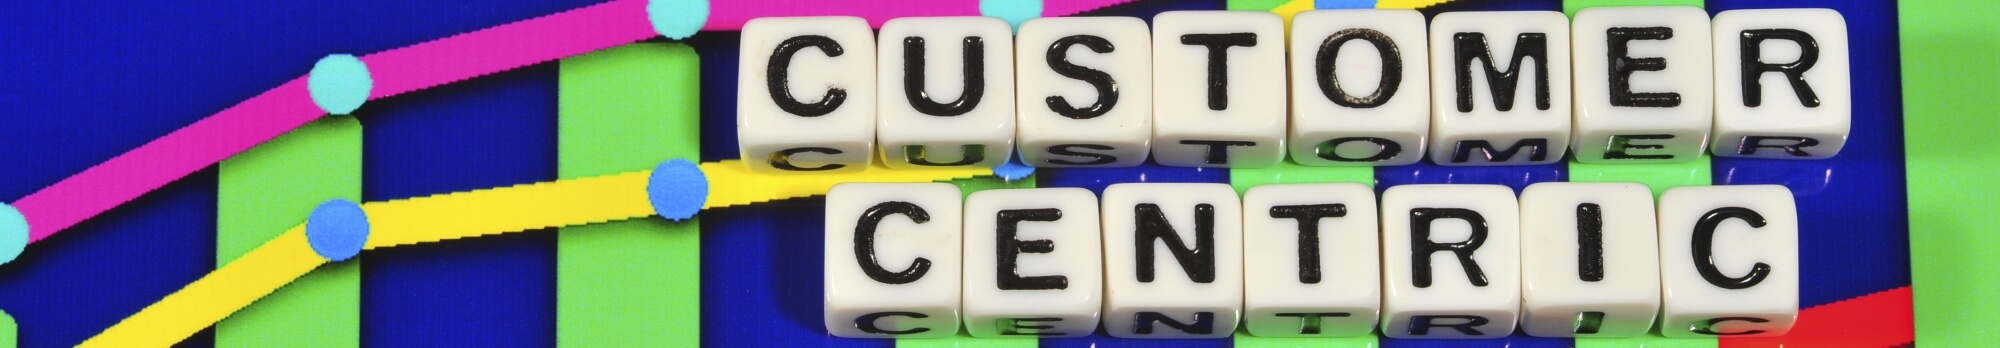 Are You Marketing to Channels or Customers?